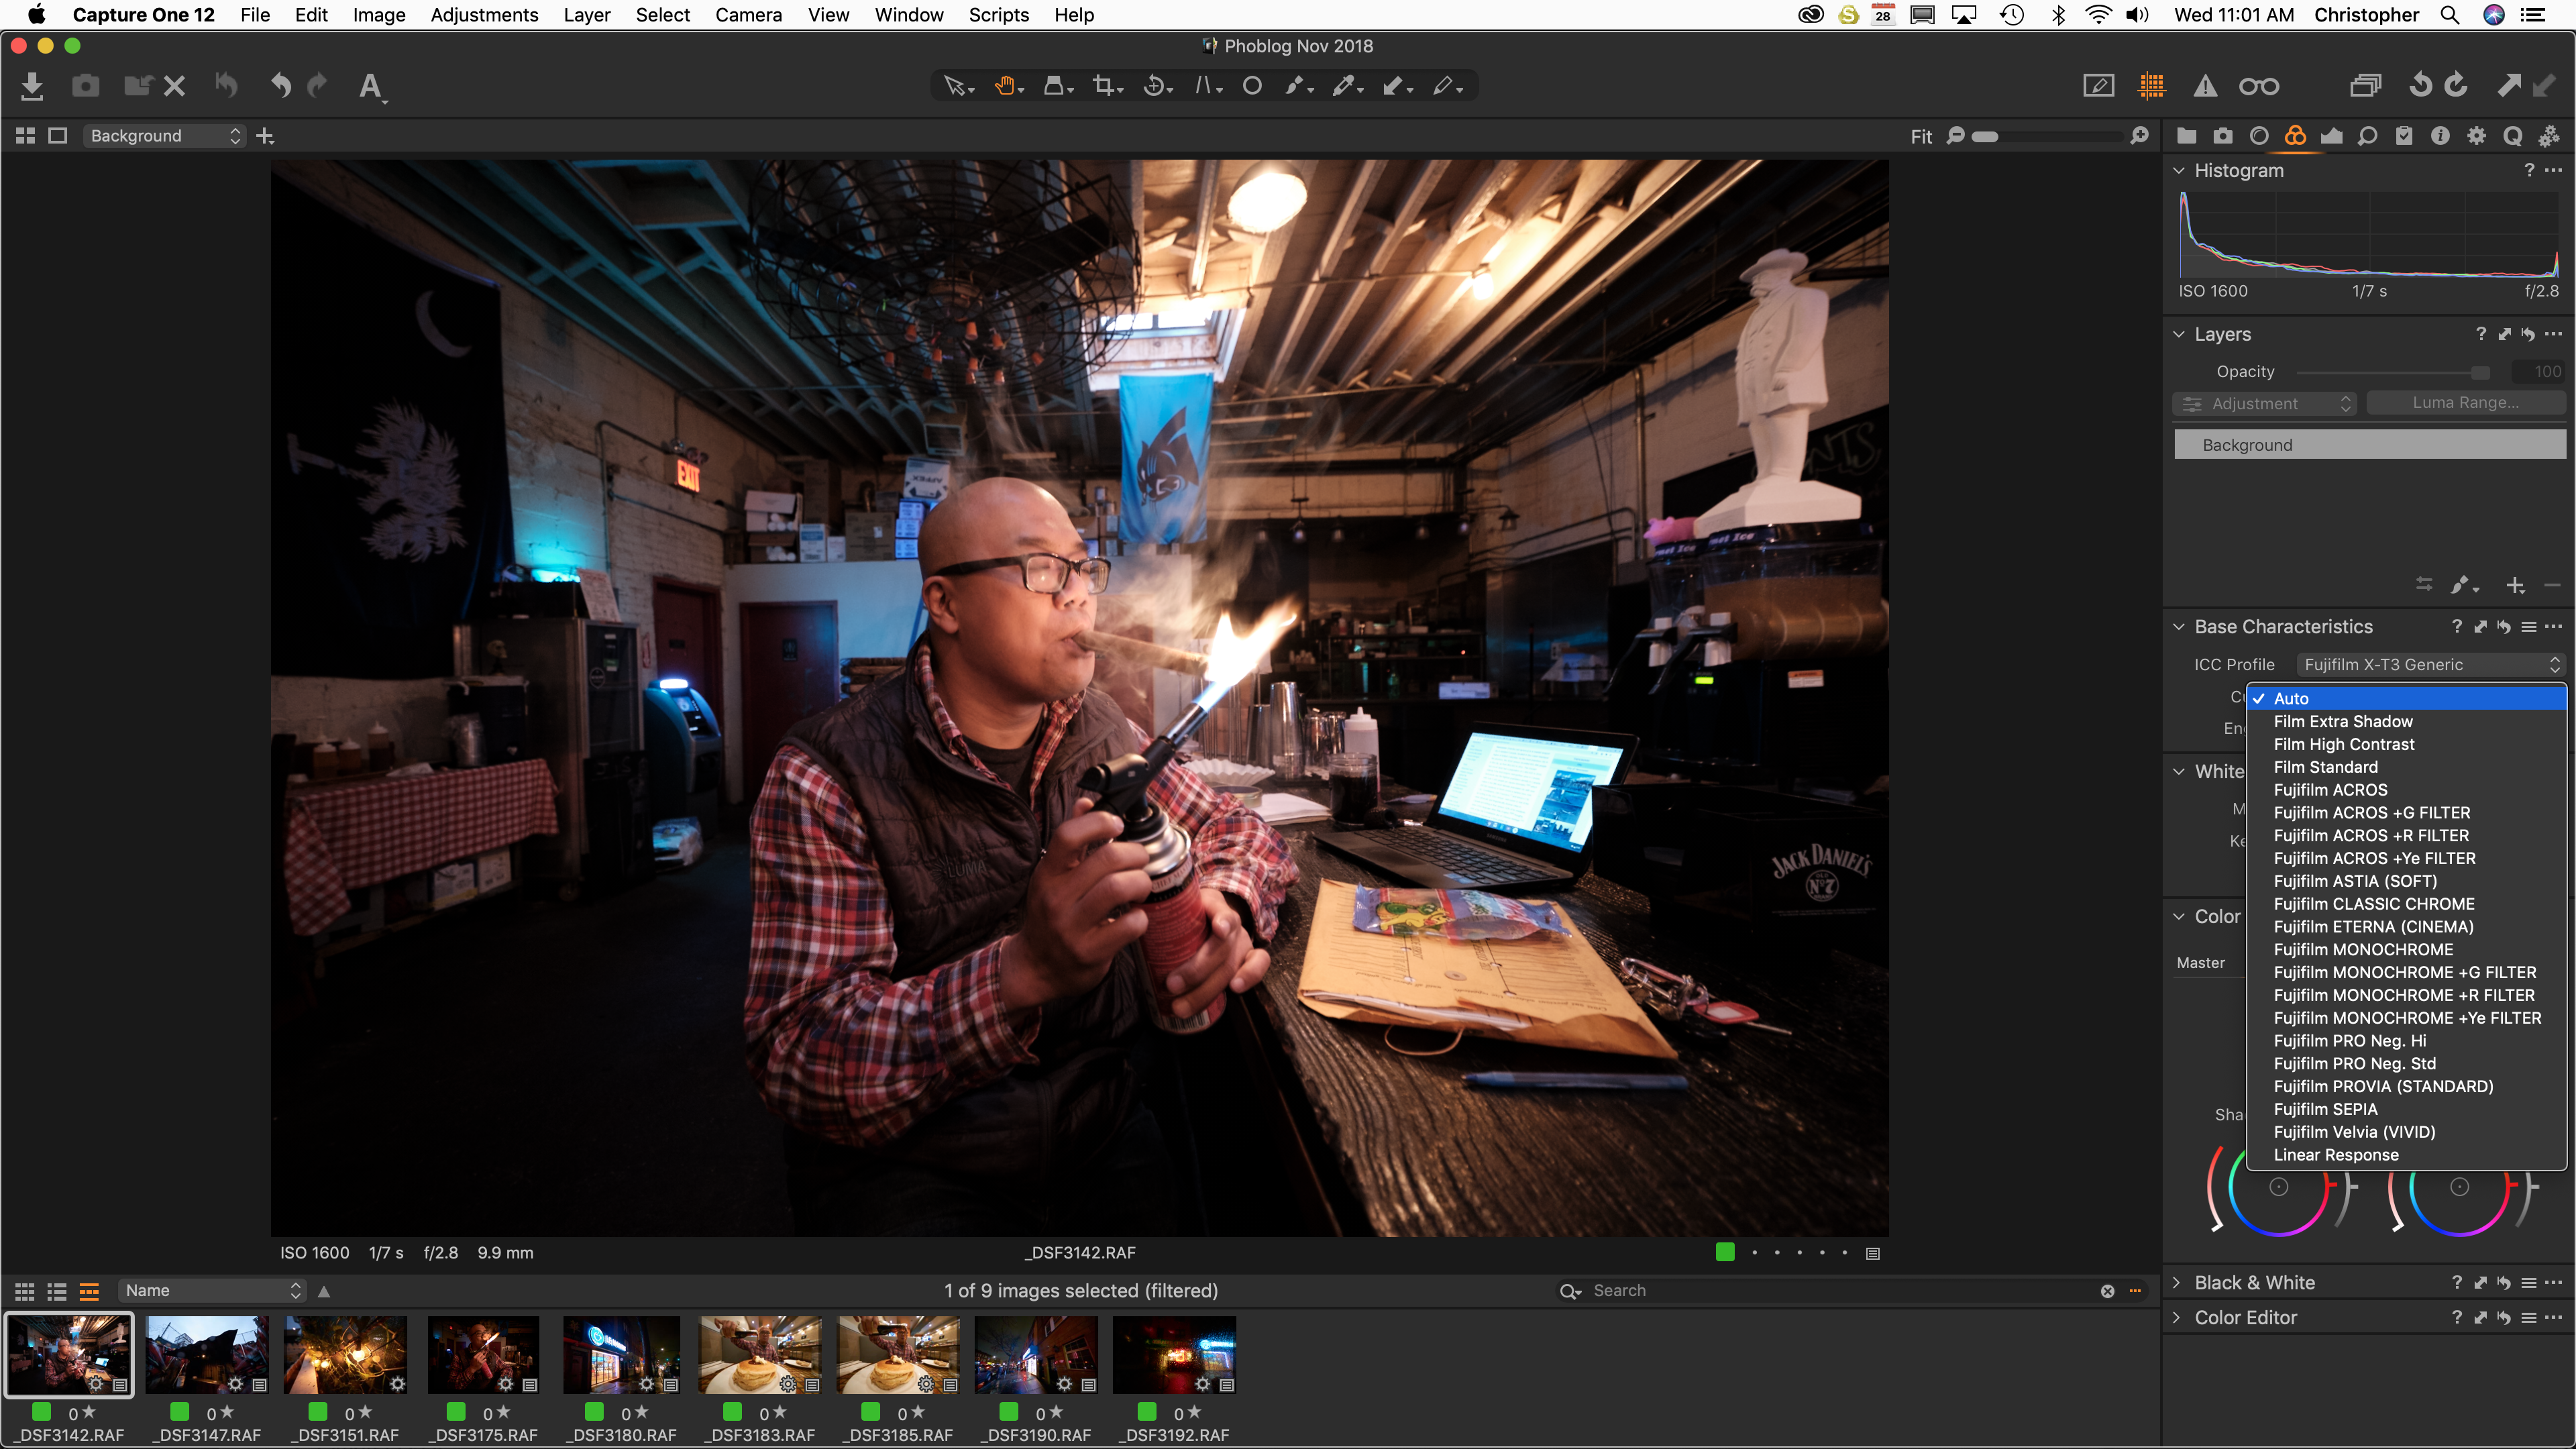 Review: Capture One 12 (Most of the Enhancements We Really